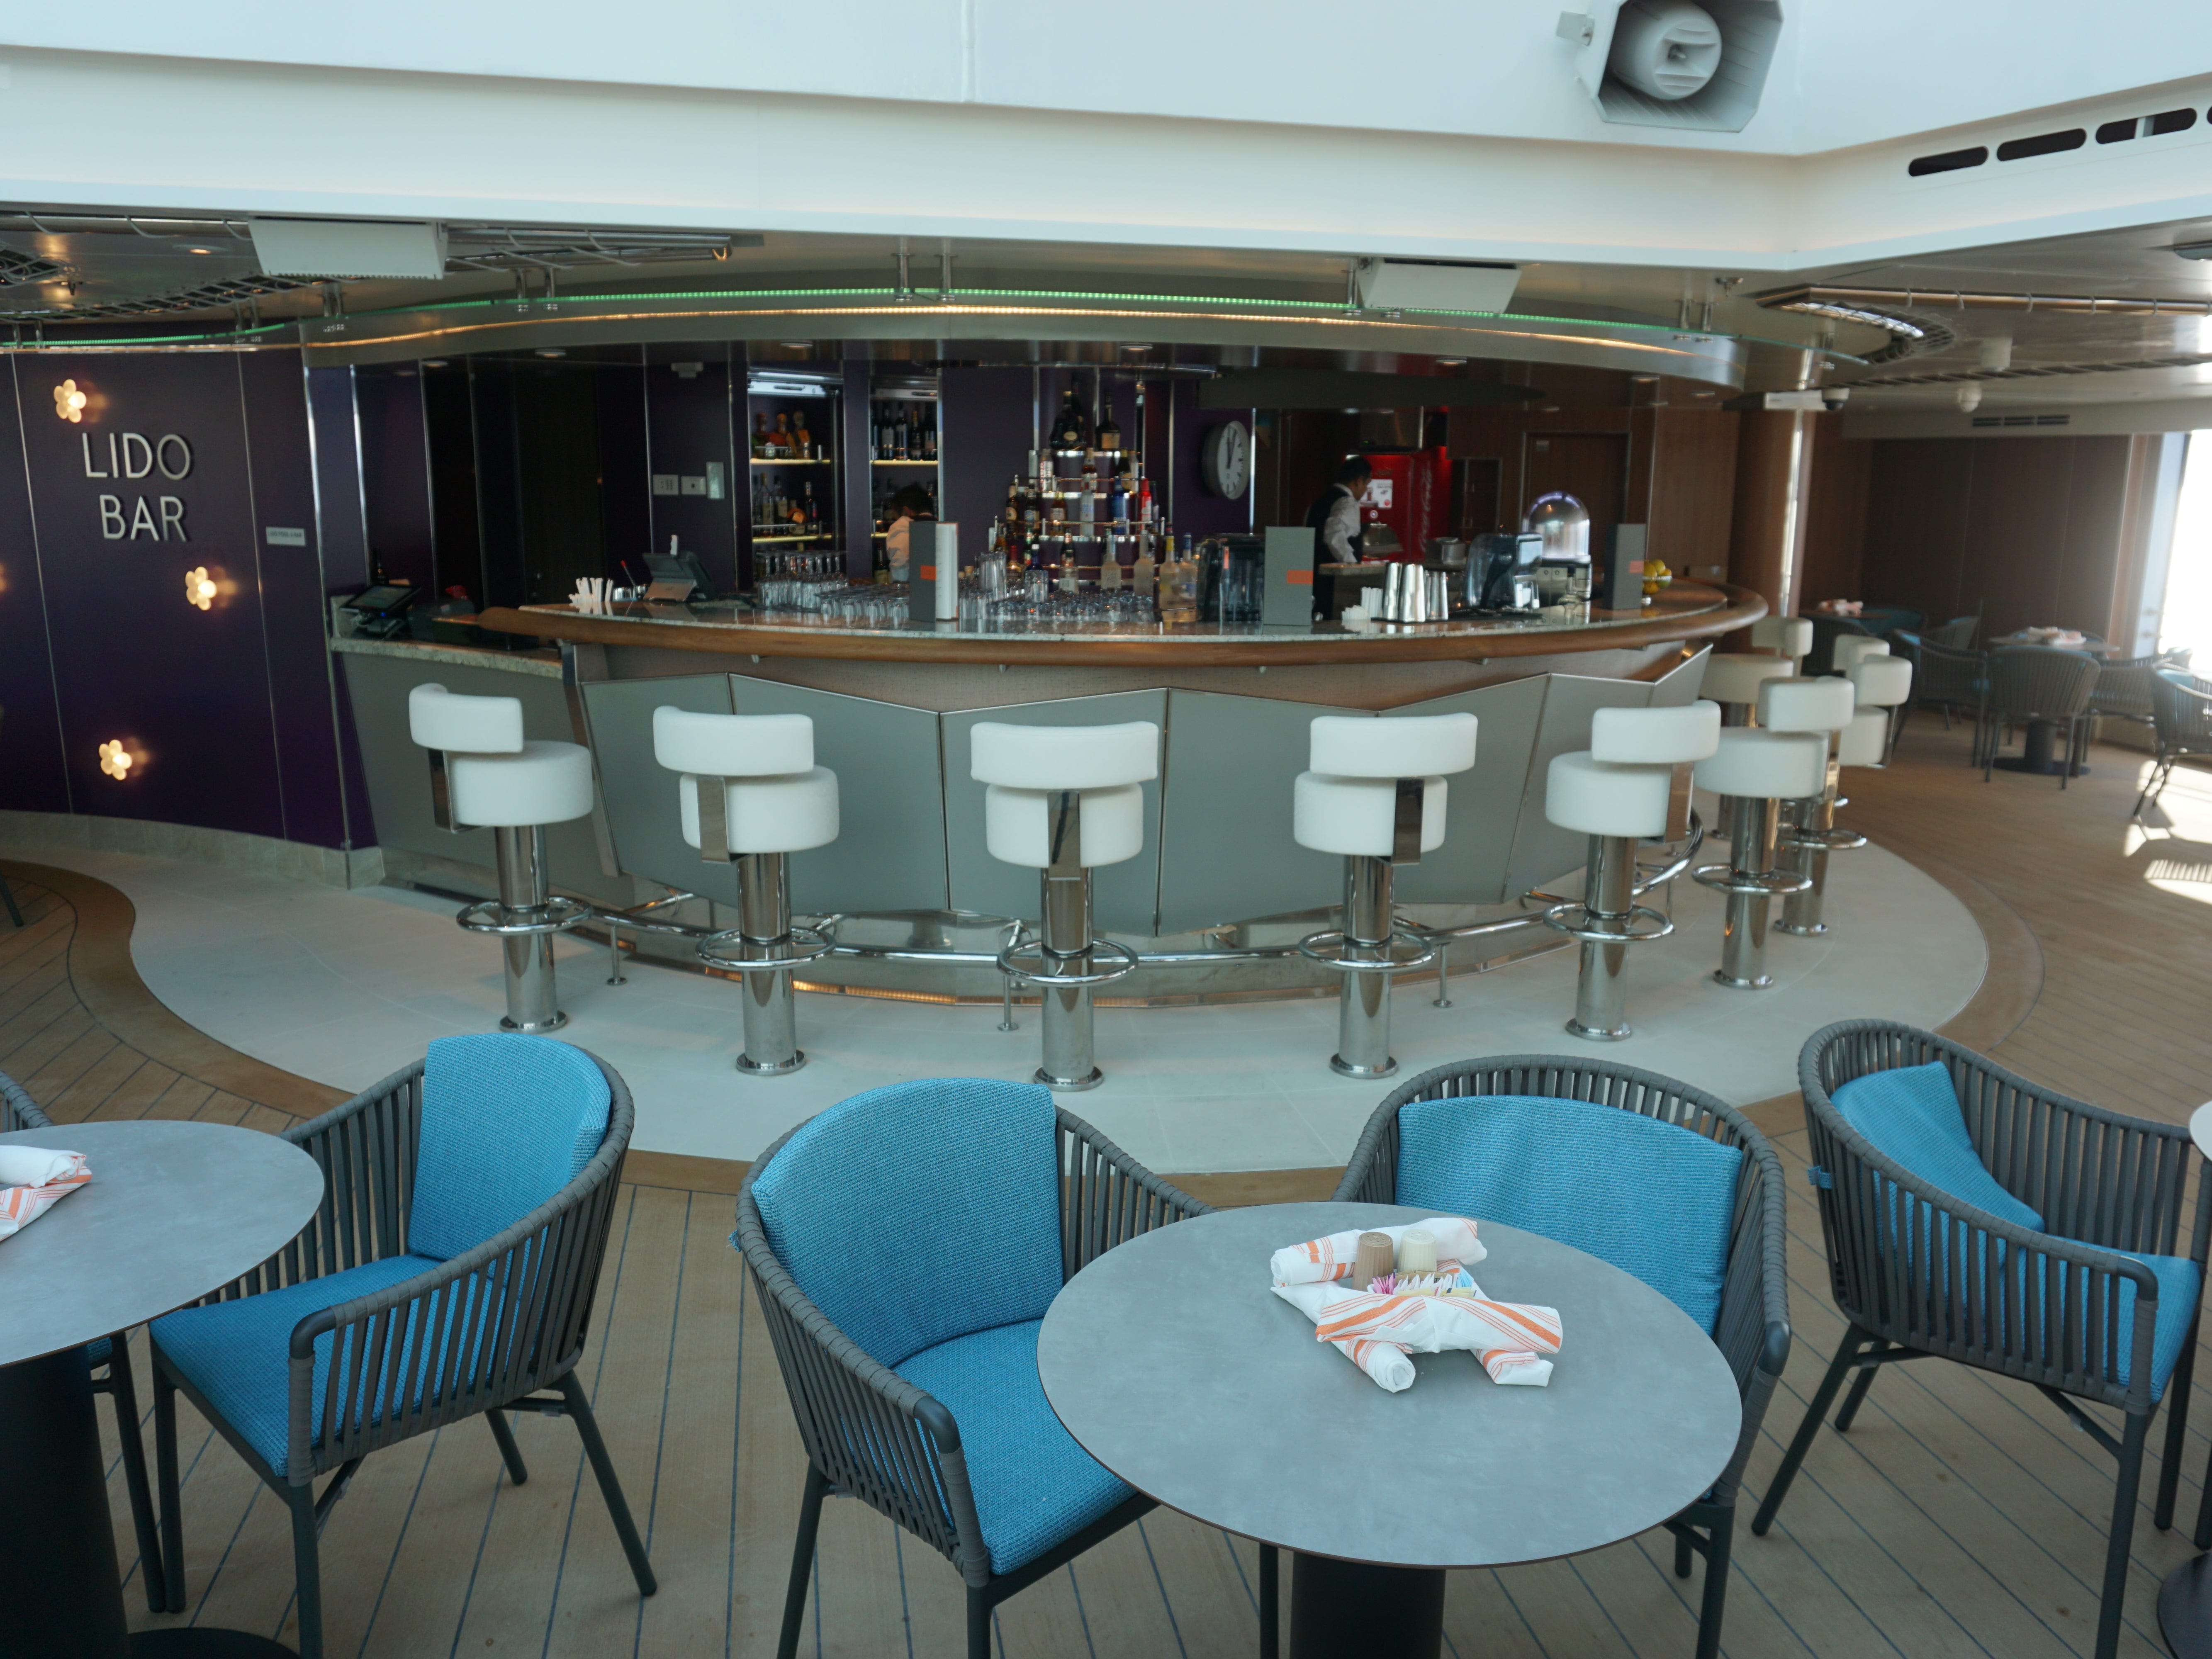 The Lido Bar is on the aft/port side of the Lido Pool.